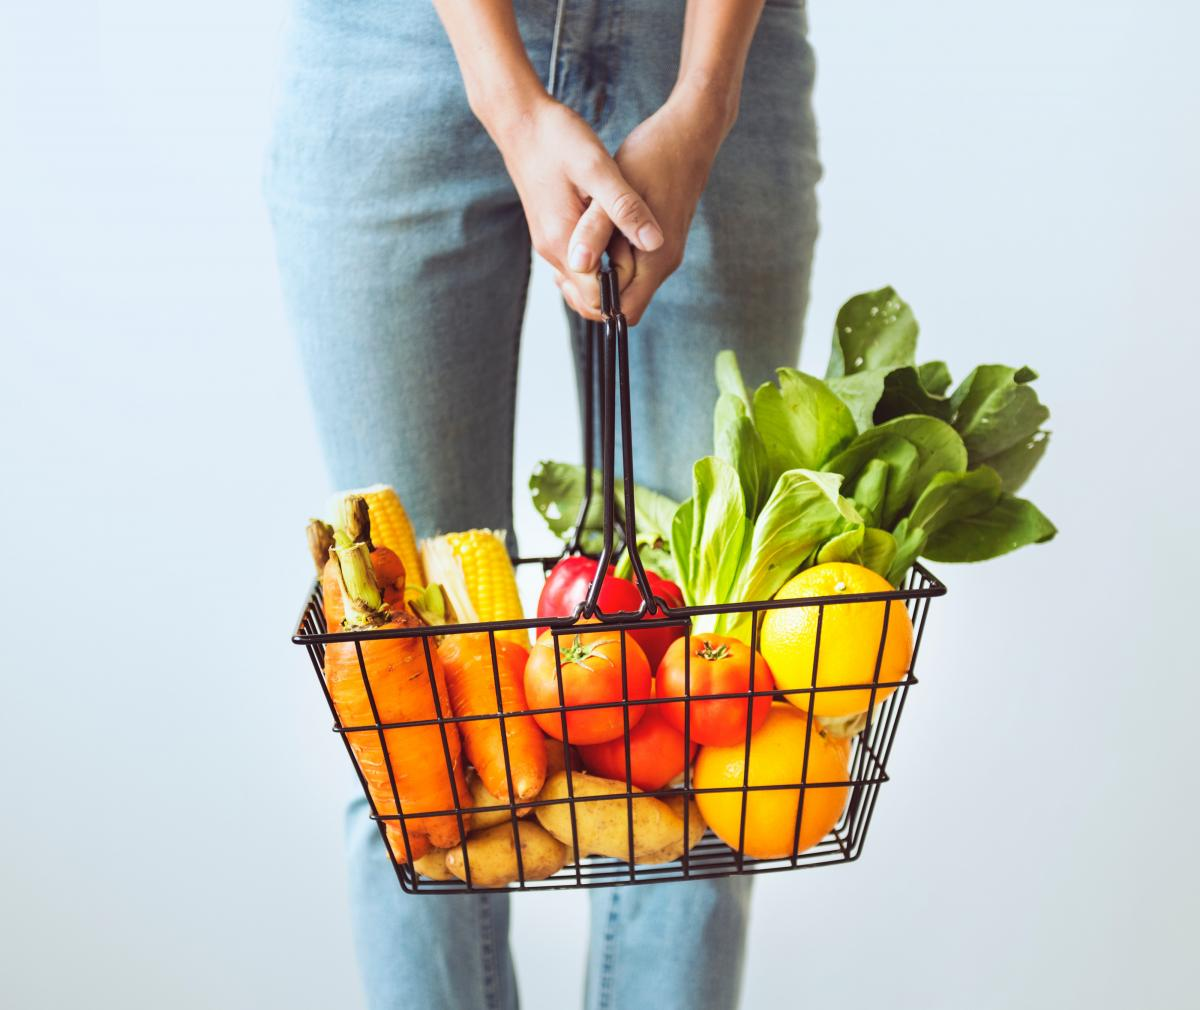 Photo of a person holding a basket full of groceries